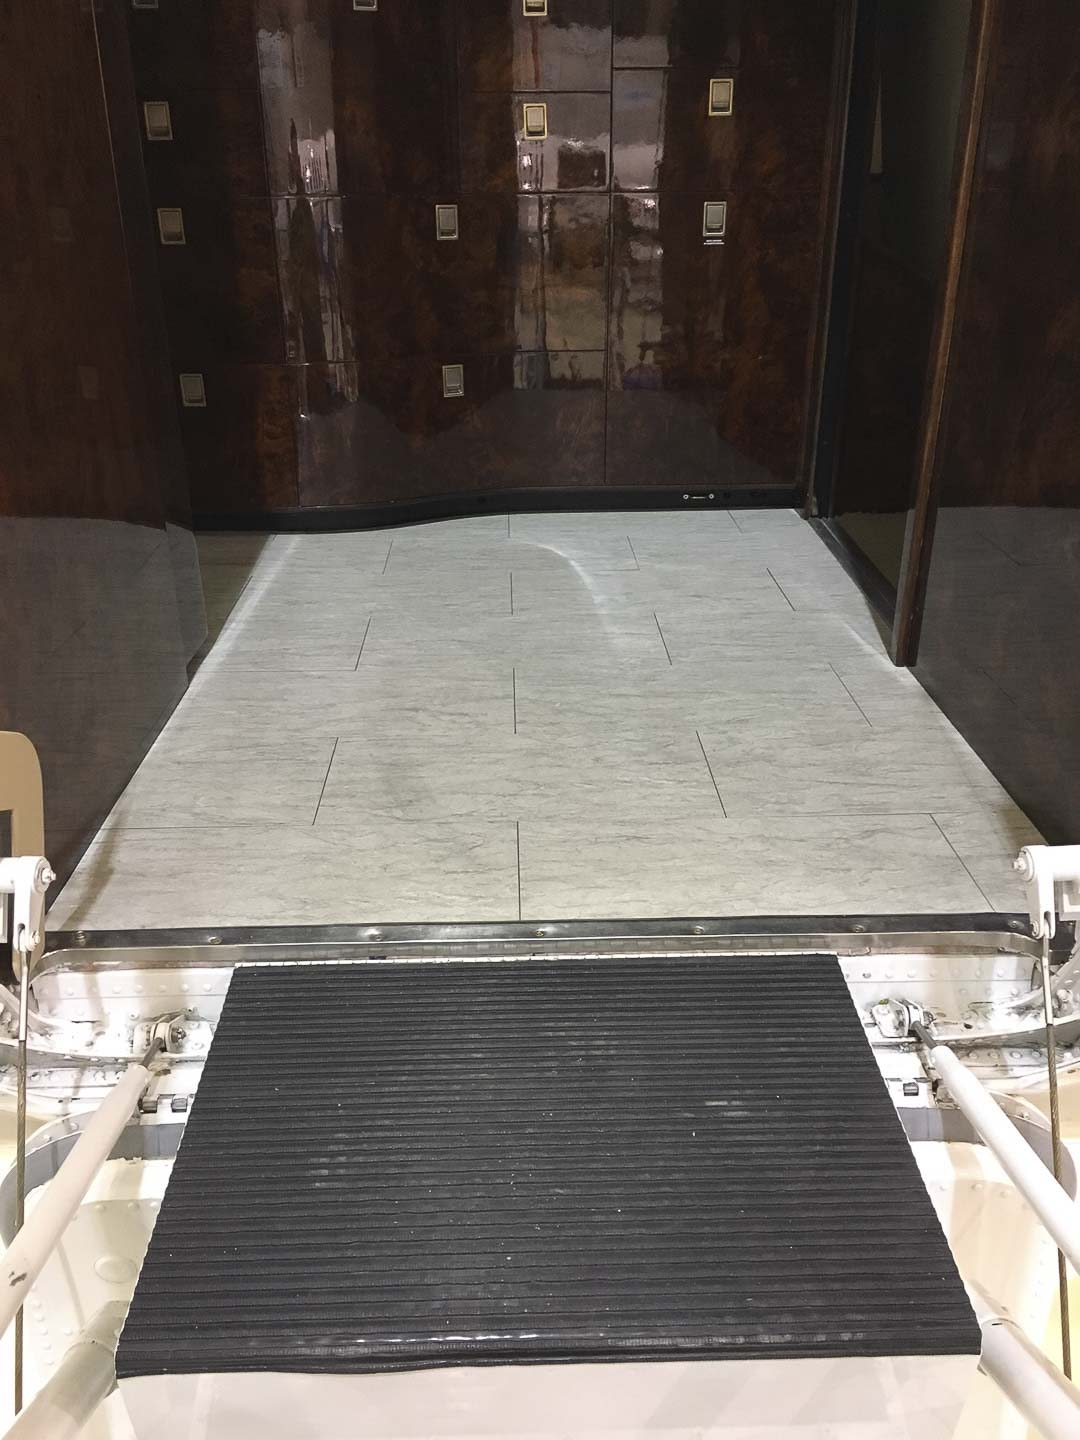 Challenger 601 aeroloc floor entry steps